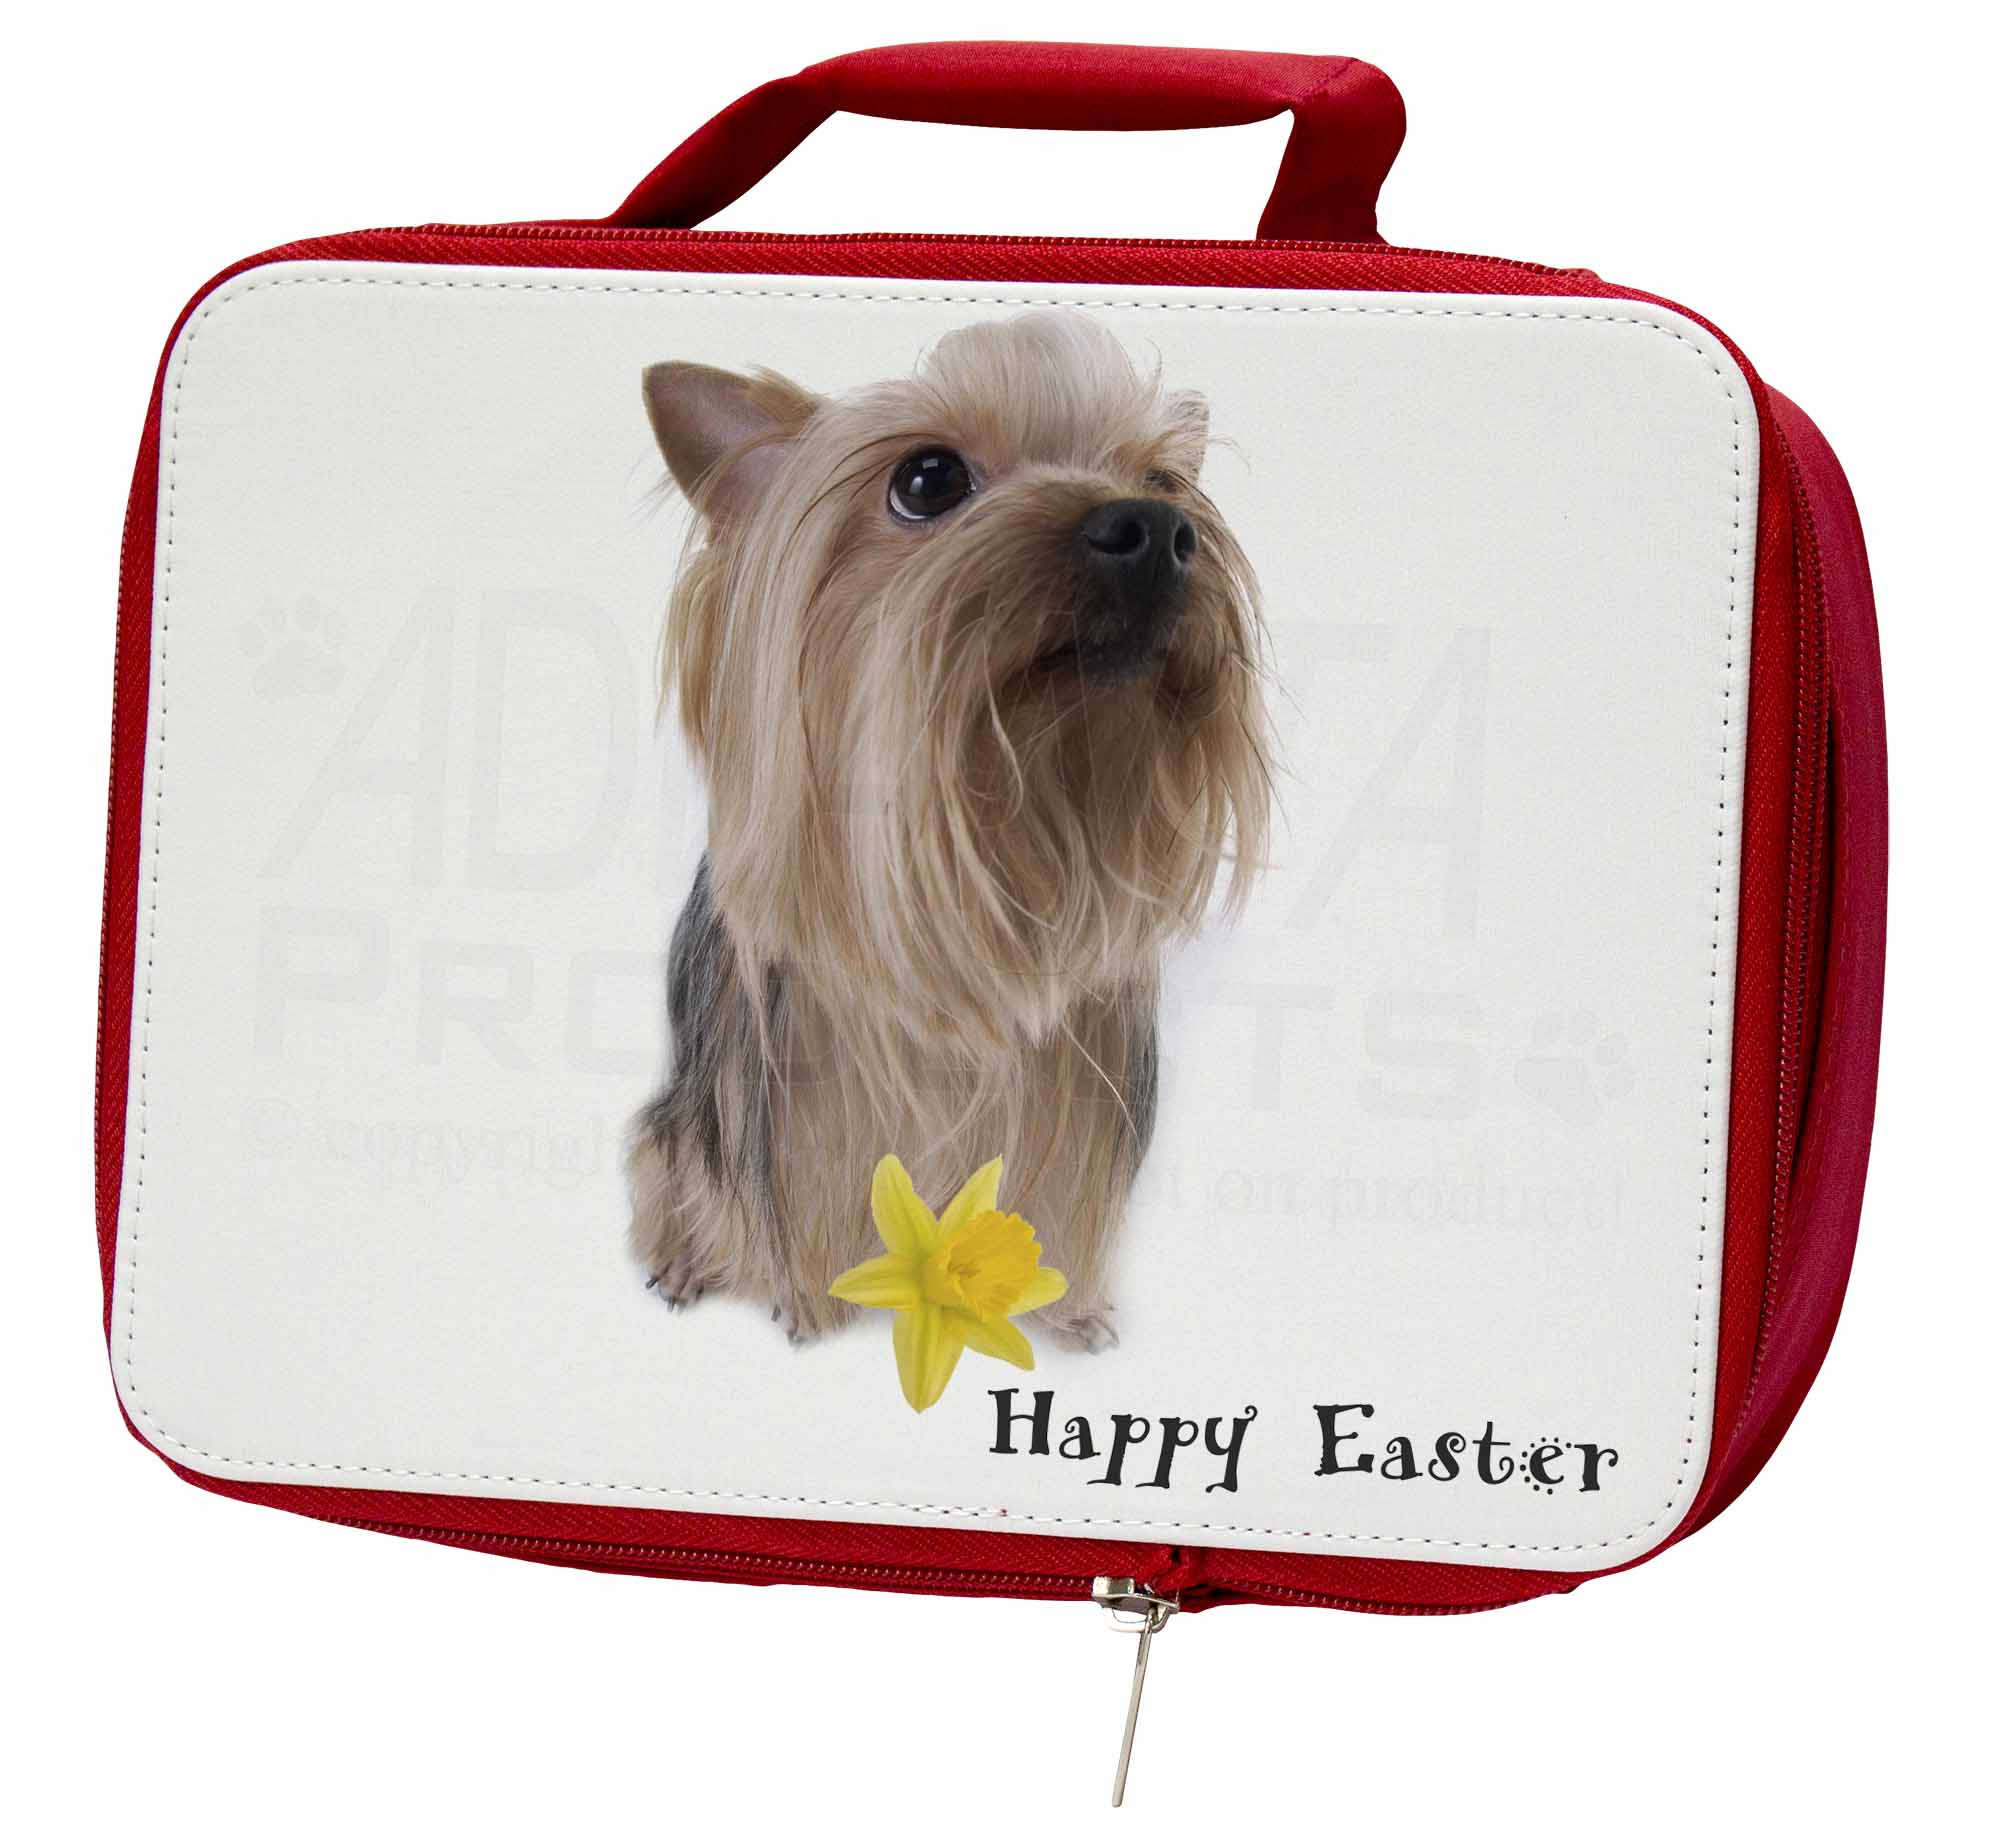 'Happy Easter' Yorkie Insulated Red School Lunch BoxPicnic Bag, ADY2DA1LBR